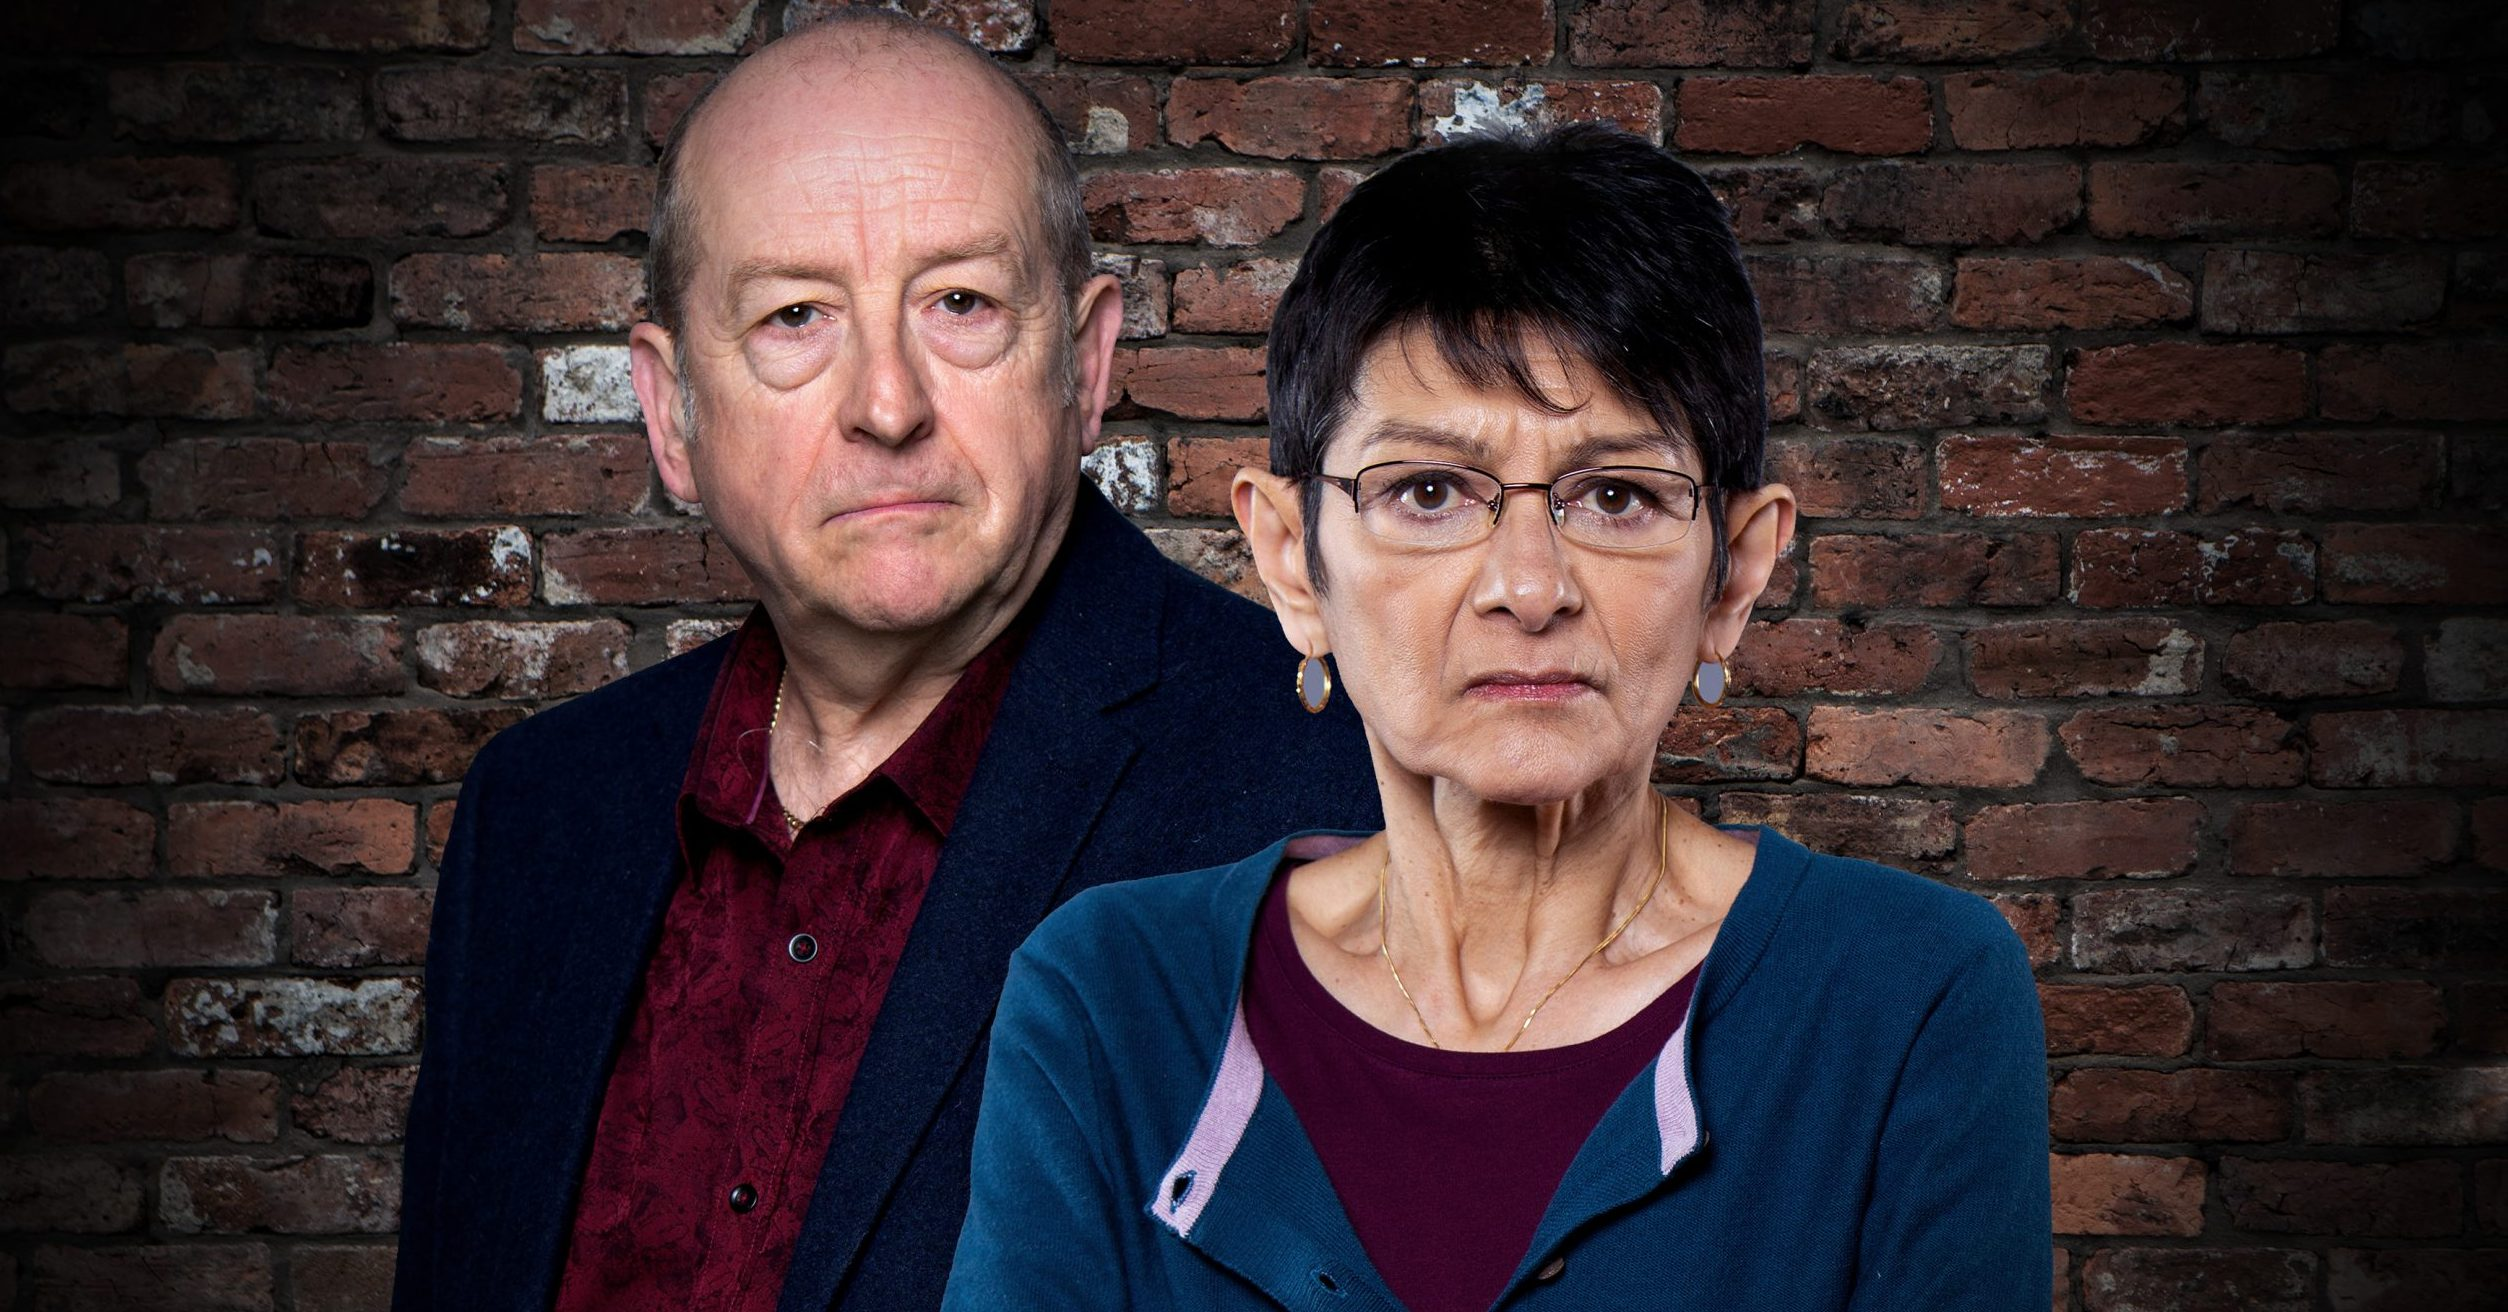 Coronation Street's Shelley King says storyline with Ian Bartholomew 'drew them closer' in real life